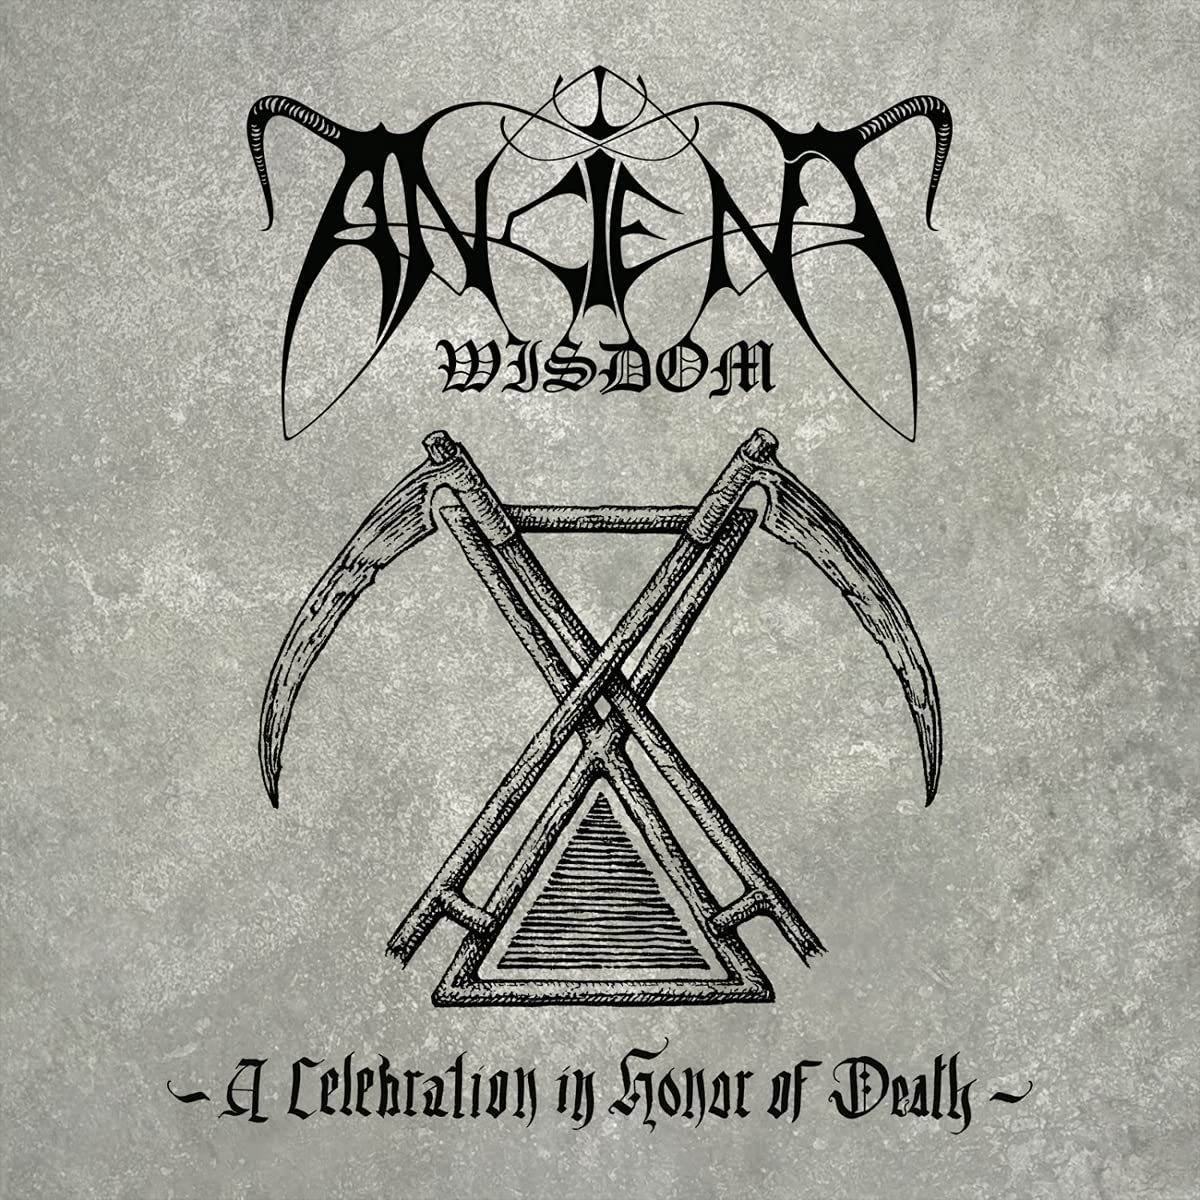 Ancient Wisdom - A Celebration in Honor of Death (2021) [FLAC] Download